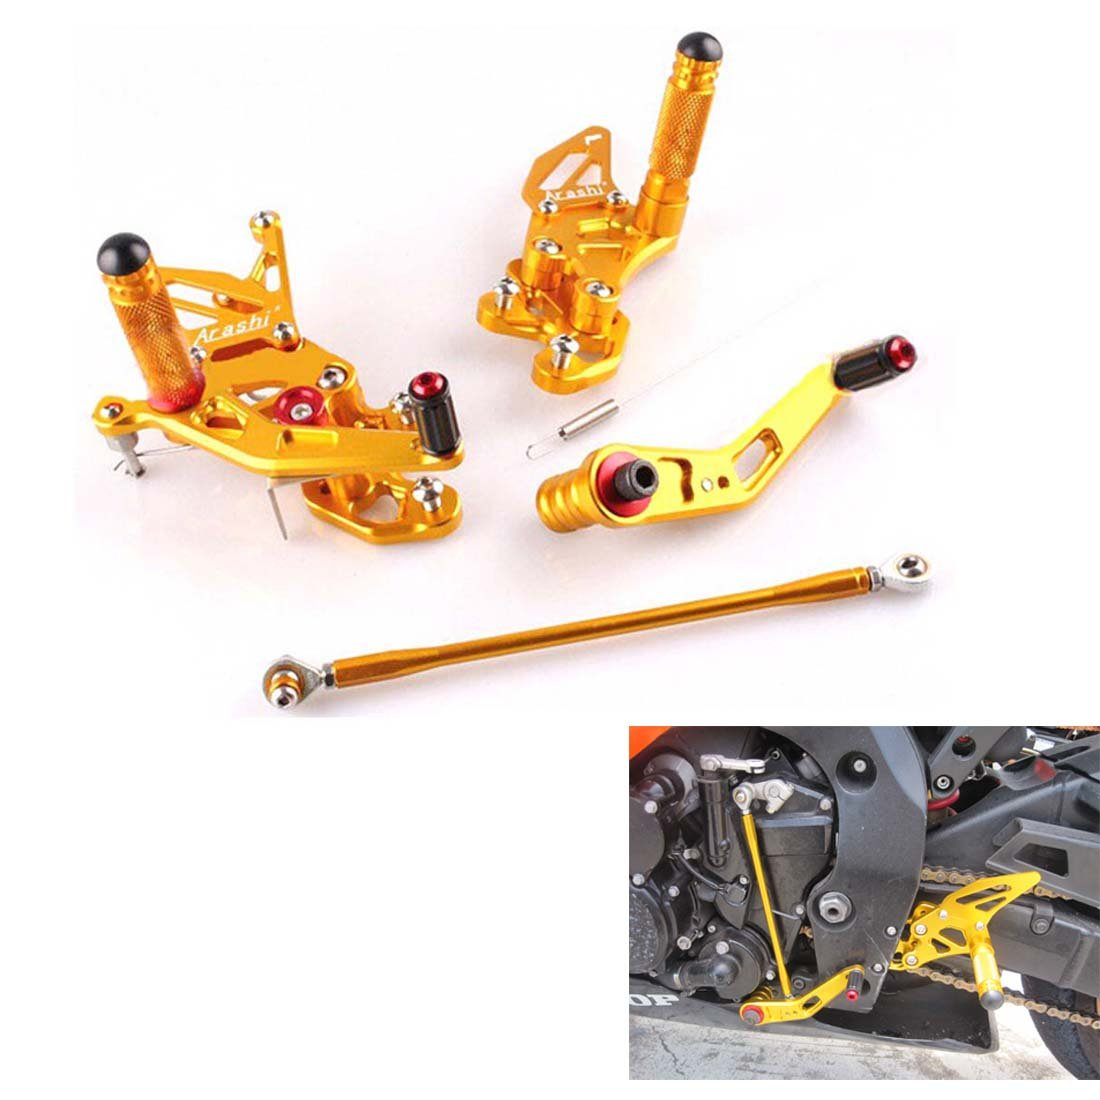 GSX-R 600/750 Rearsets Footpegs Rear Sets For Suzuki GSX-R 600 GSXR750 2006-2010 (K6 K7 K8 K9) Issyzone